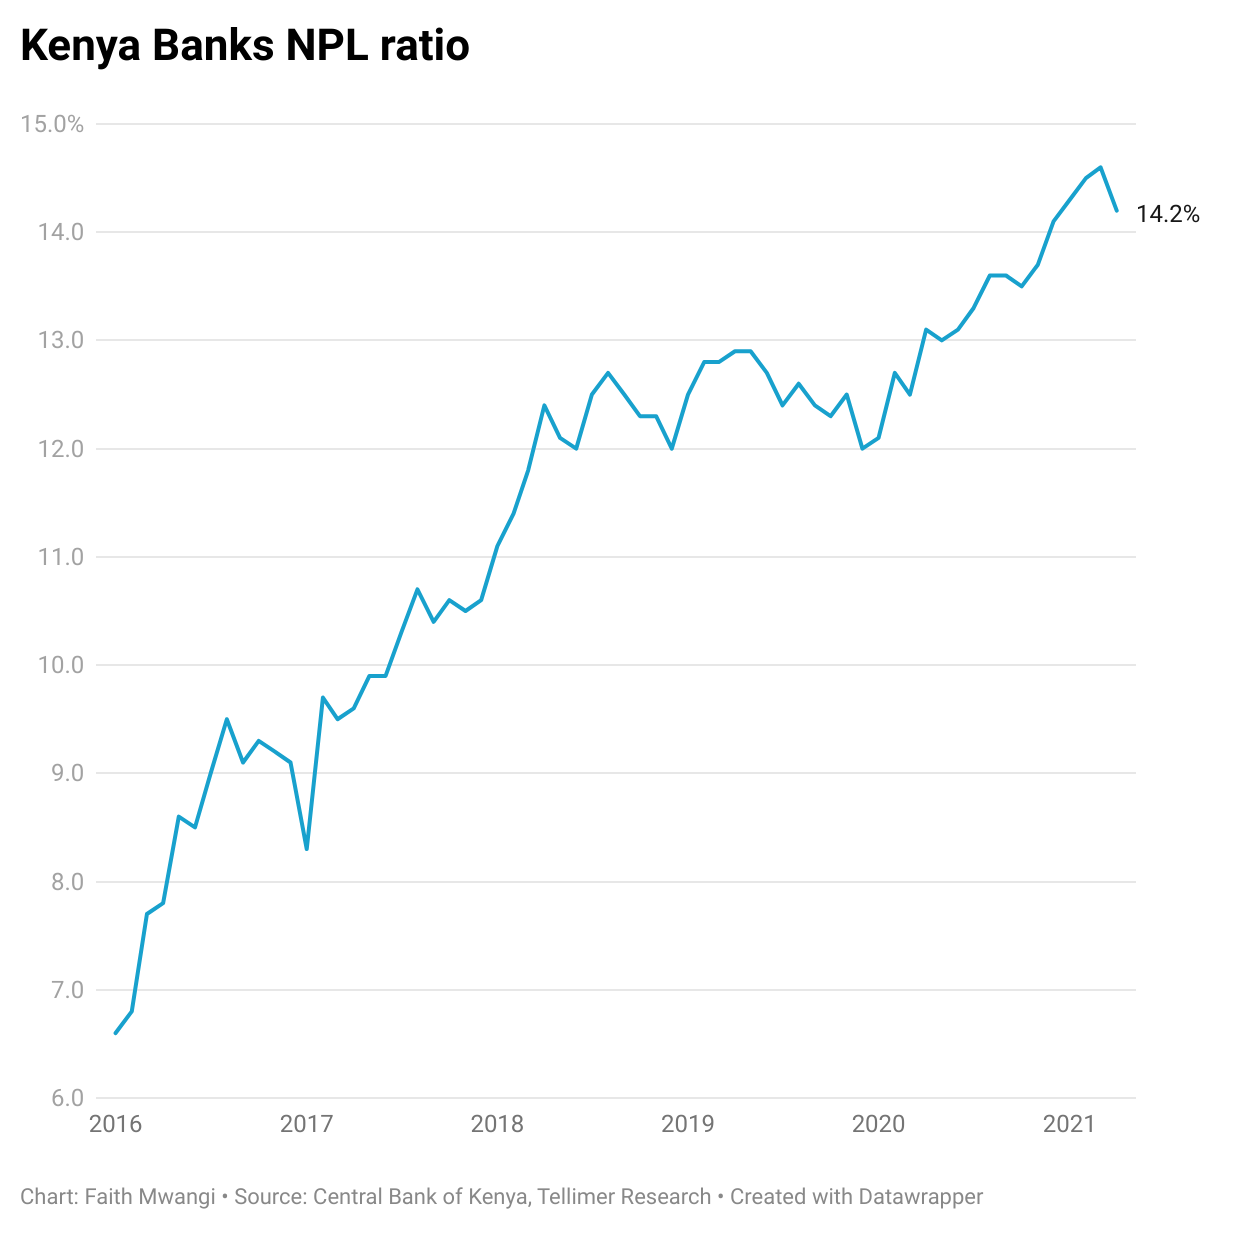 """<iframe title=""""Kenya Banks NPL ratio"""" aria-label=""""Interactive line chart"""" id=""""datawrapper-chart-EhQpr"""" src=""""https://datawrapper.dwcdn.net/EhQpr/2/"""" scrolling=""""no"""" frameborder=""""0"""" style=""""width: 0; min-width: 100% !important; border: none;"""" height=""""600""""></iframe><script type=""""text/javascript"""">!function(){""""use strict"""";window.addEventListener(""""message"""",(function(e){if(void 0!==e.data[""""datawrapper-height""""]){var t=document.querySelectorAll(""""iframe"""");for(var a in e.data[""""datawrapper-height""""])for(var r=0;r<t.length;r++)t[r].contentWindow===e.source&&(t[r].style.height=e.data[""""datawrapper-height""""][a]+""""px"""")}}))}(); </script>"""